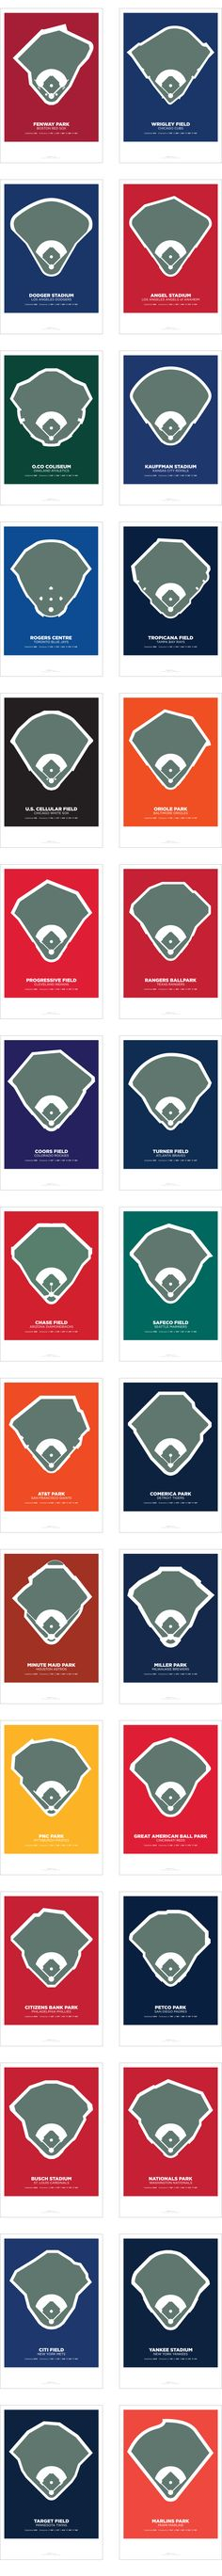 THIRTY81: The Fields of Baseball Poster Series, ReKicked by Lou Spirito — Kickstarter